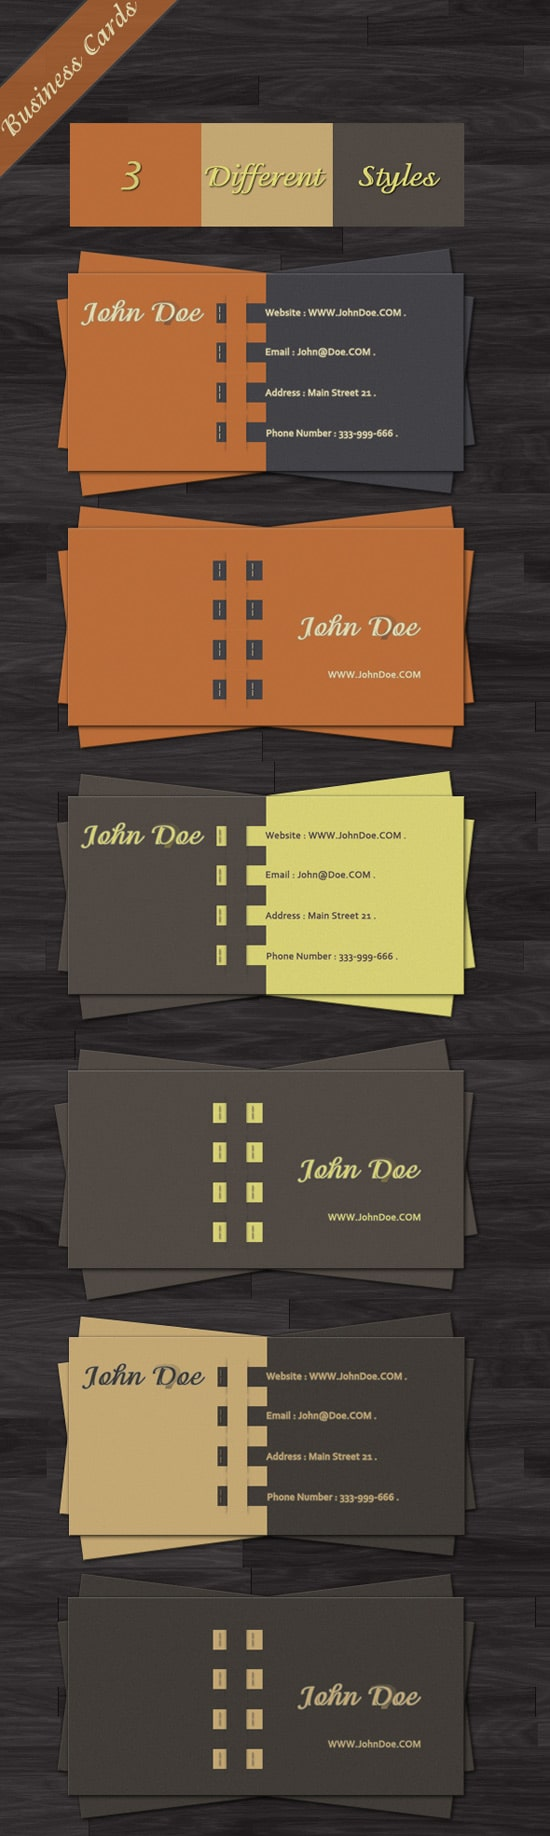 Free Business Card Templates Designrfixcom - Business card template photoshop psd